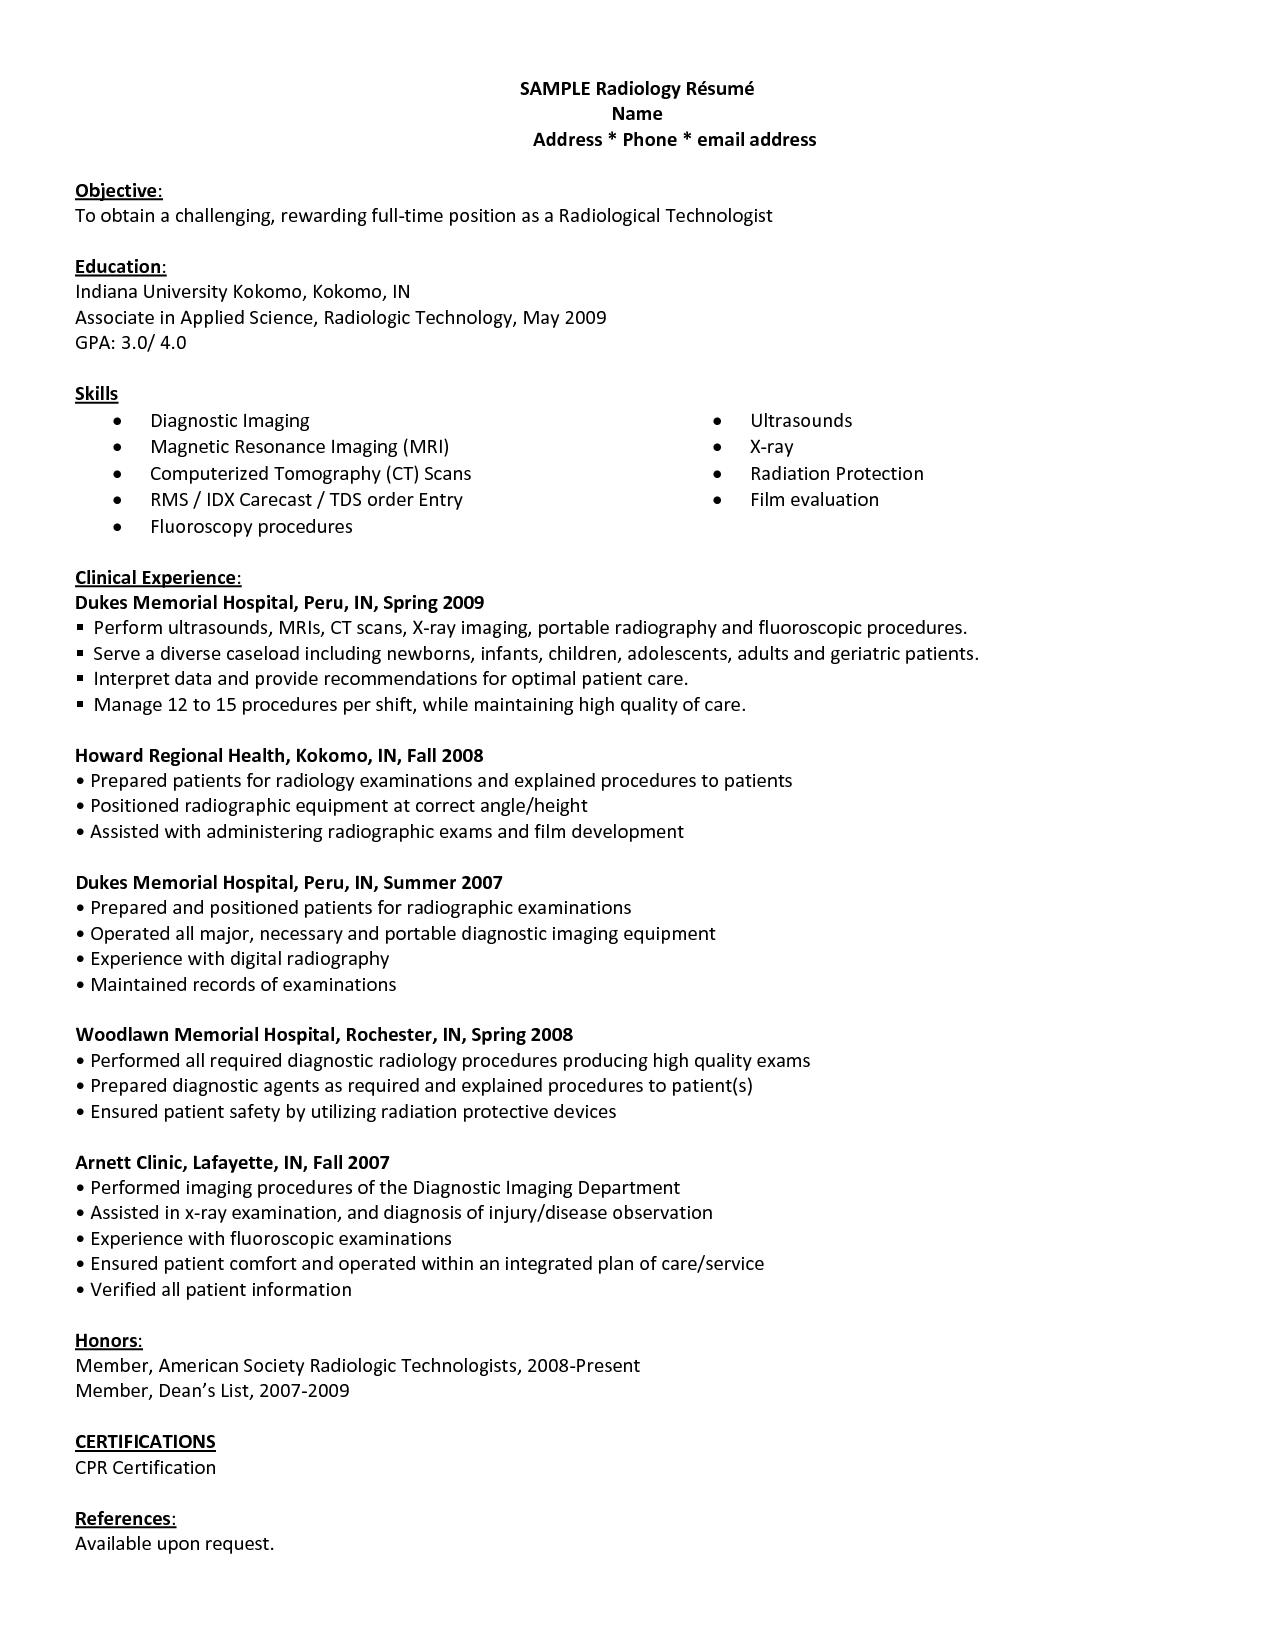 resume sample radiologic technologist mri rad tech pinterest